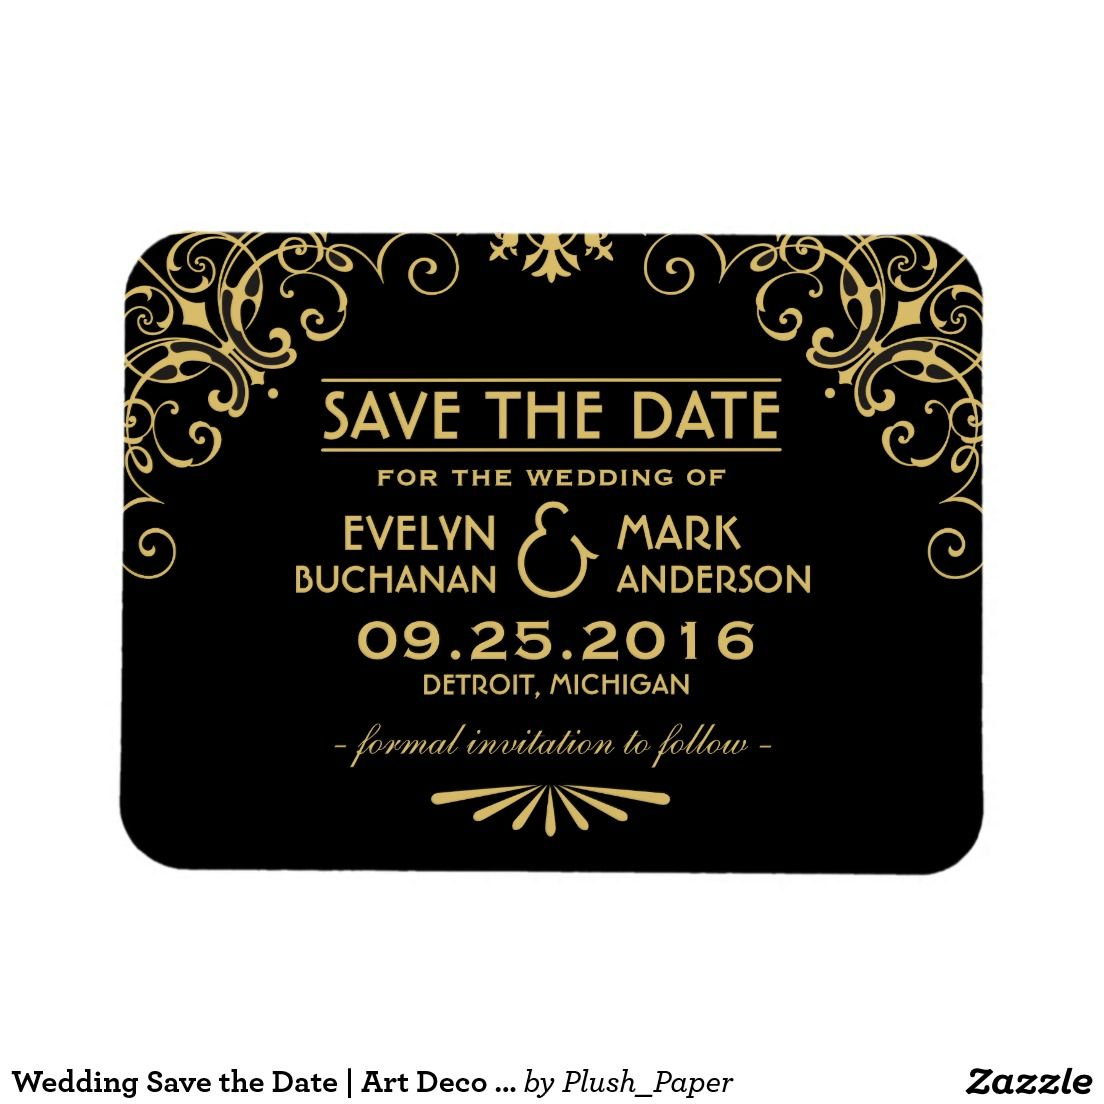 Wedding Save the Date | Art Deco Style | WEDDING: SAVE THE DATE ...